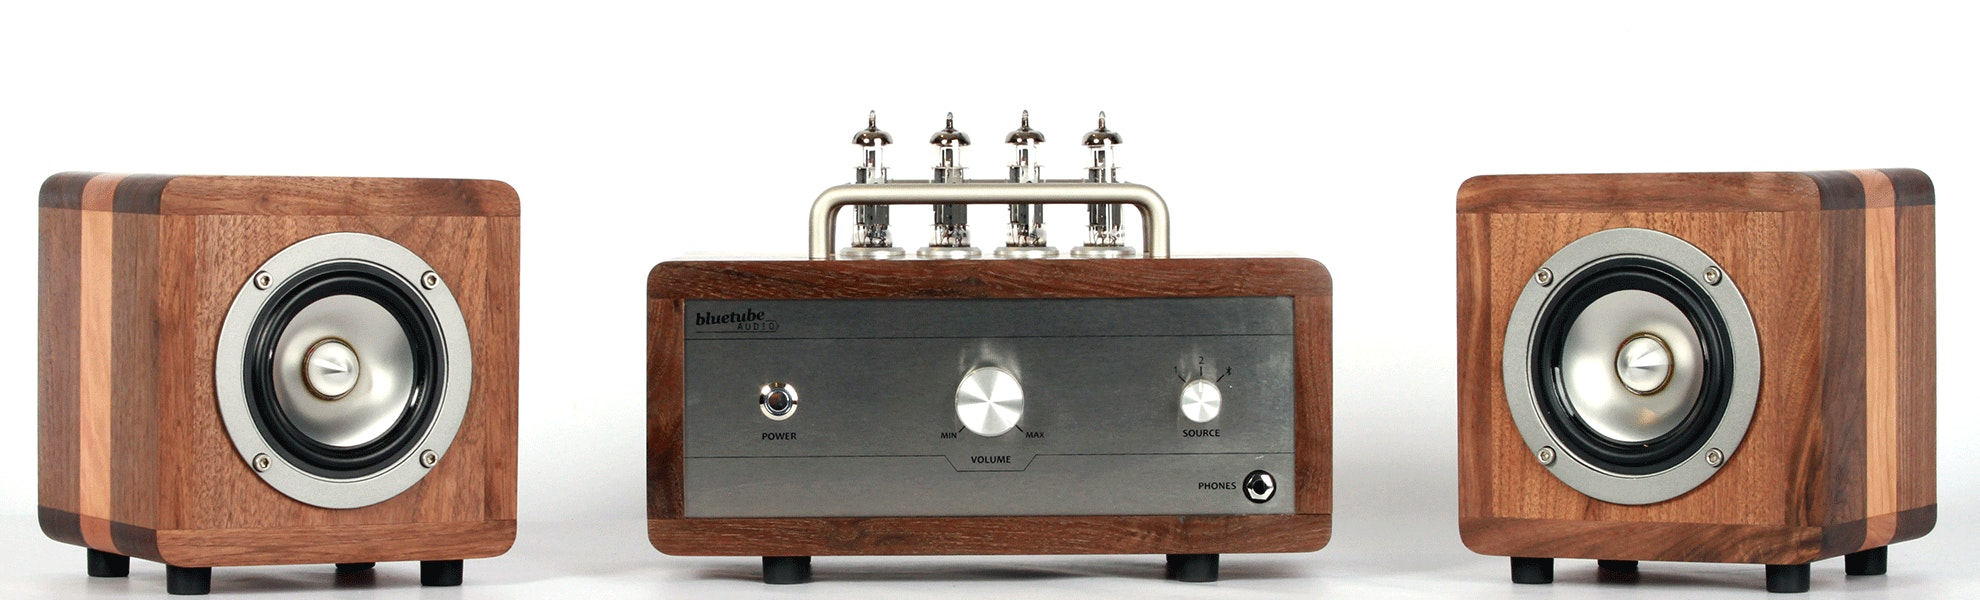 BT-4 BlueTube Amplifier + Speakers